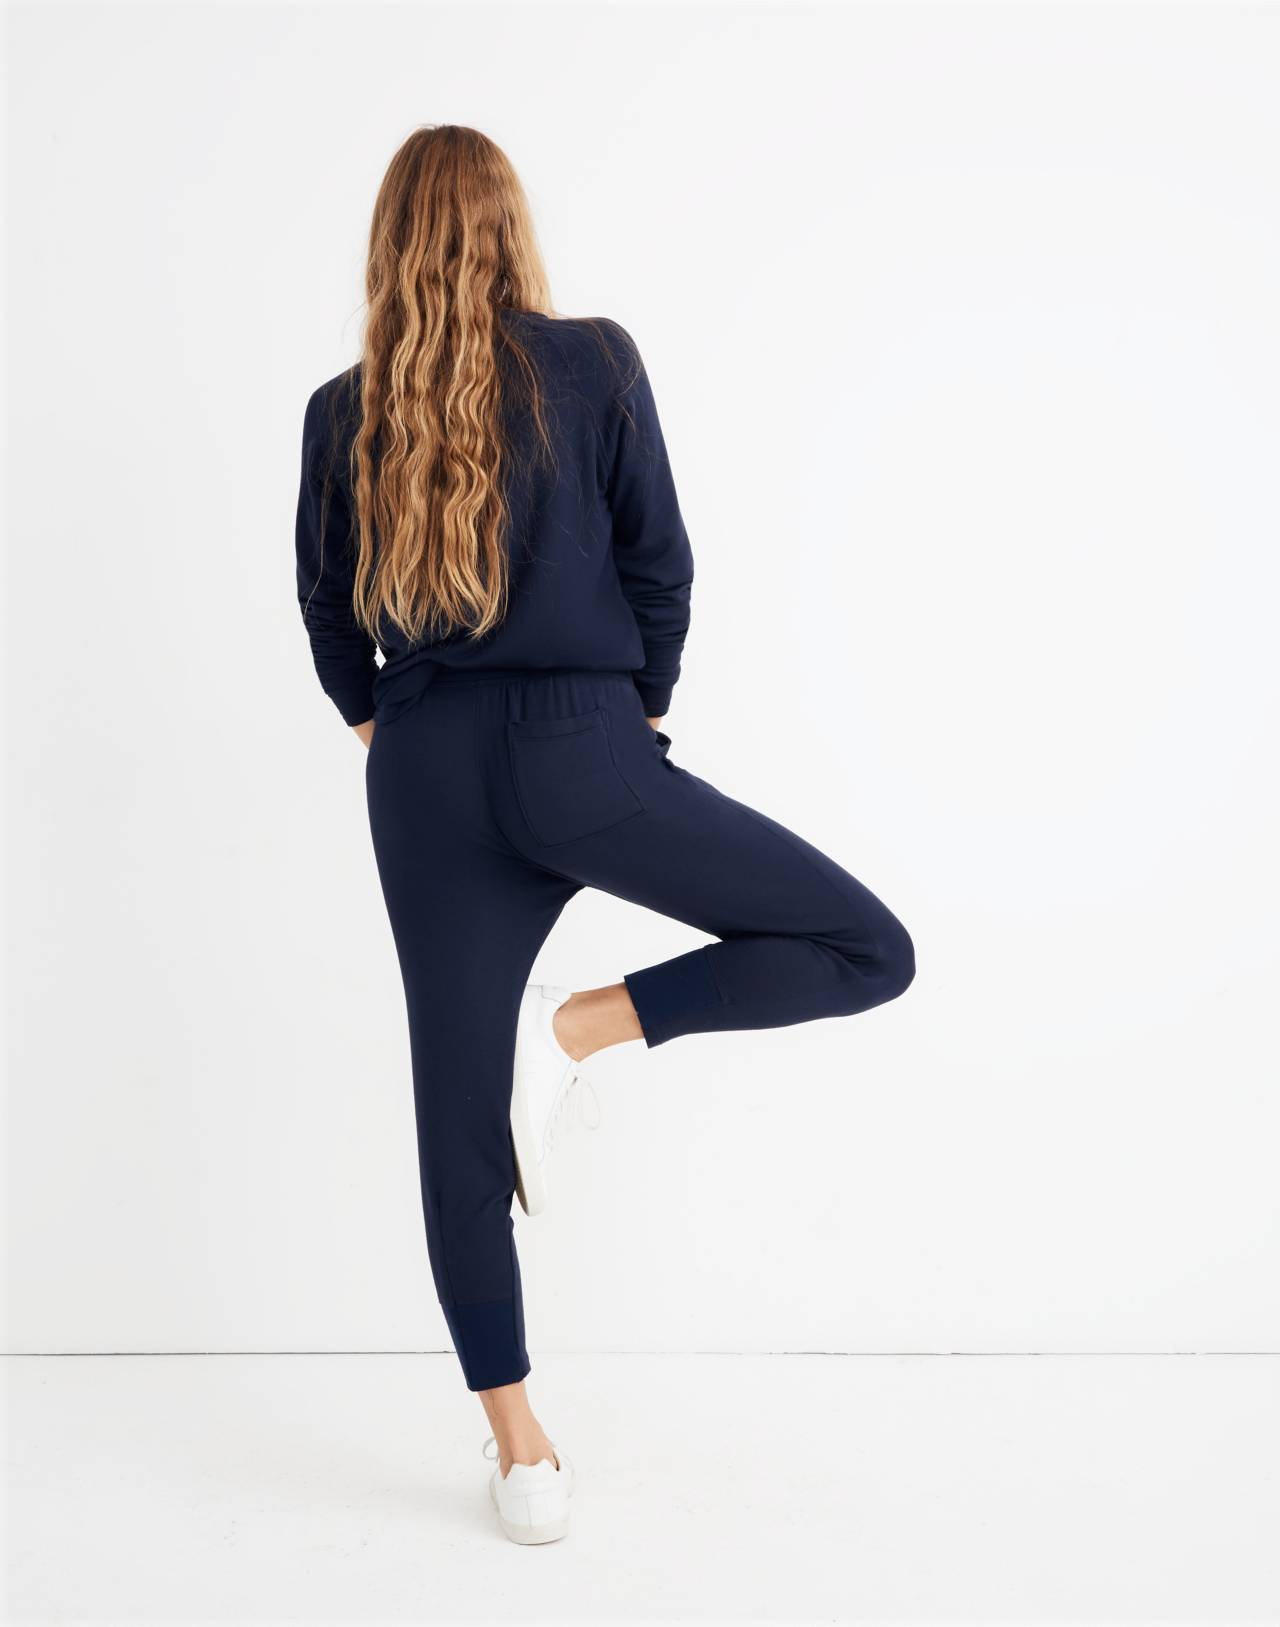 Splits59™ Reena 7/8 Pants in indigo image 2